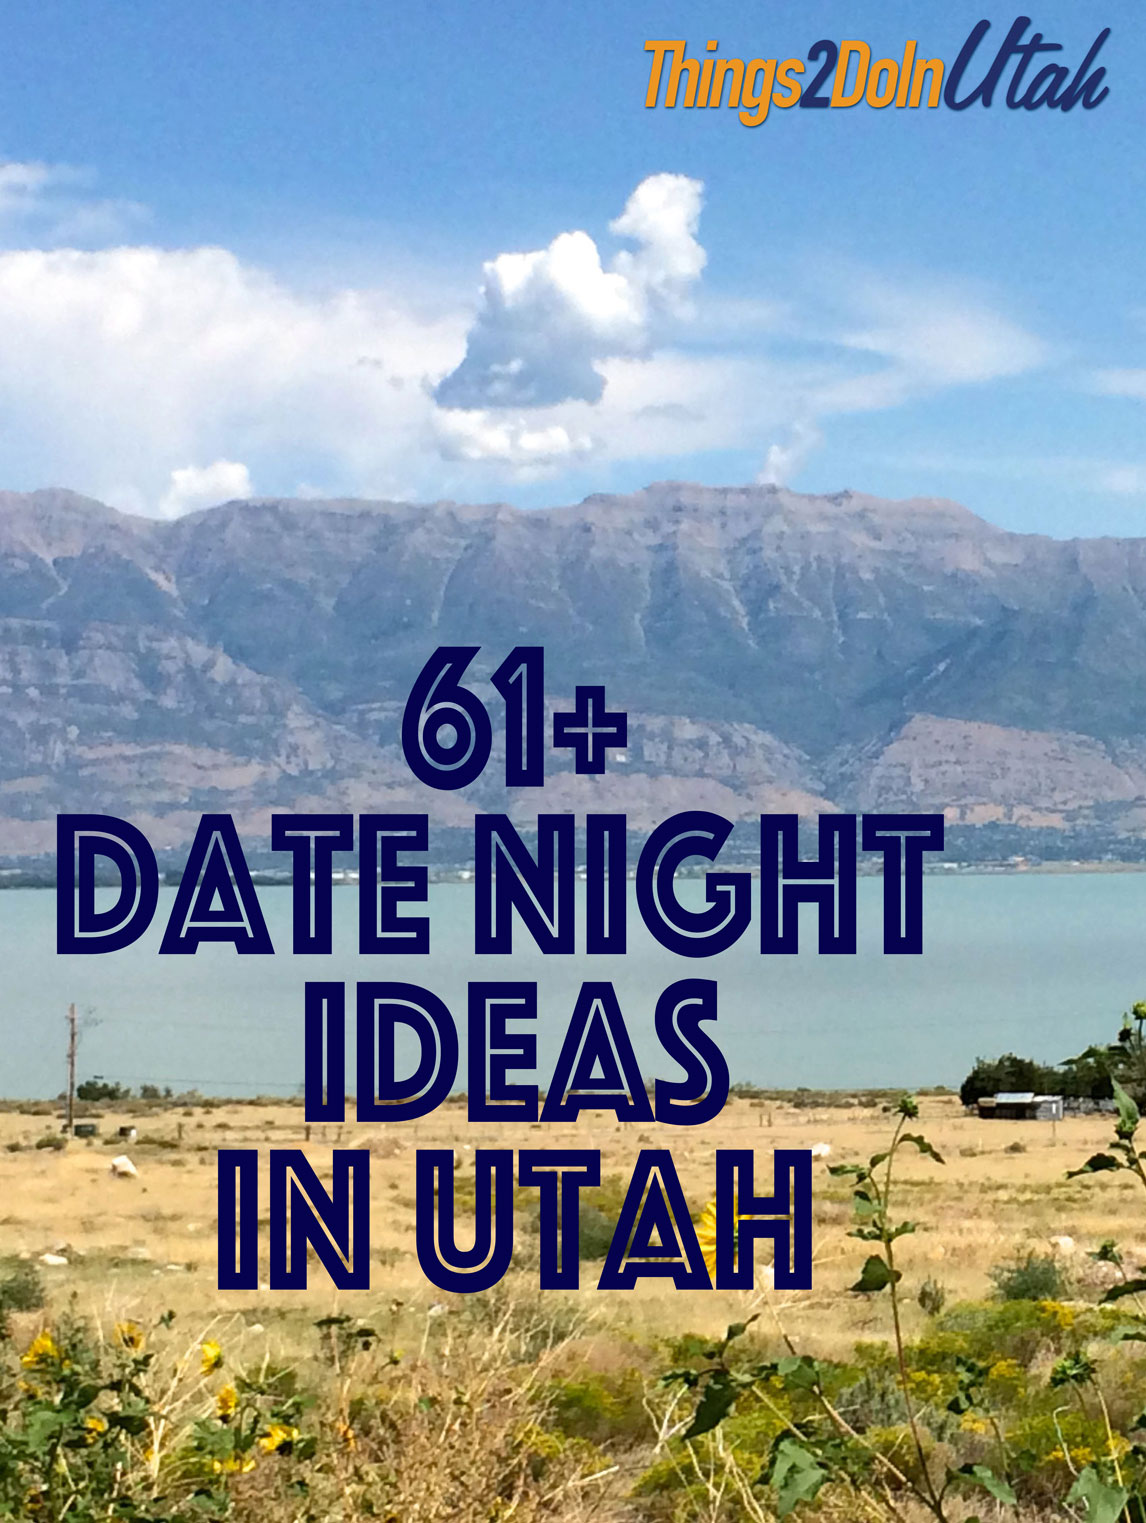 Dating ideas in salt lake city